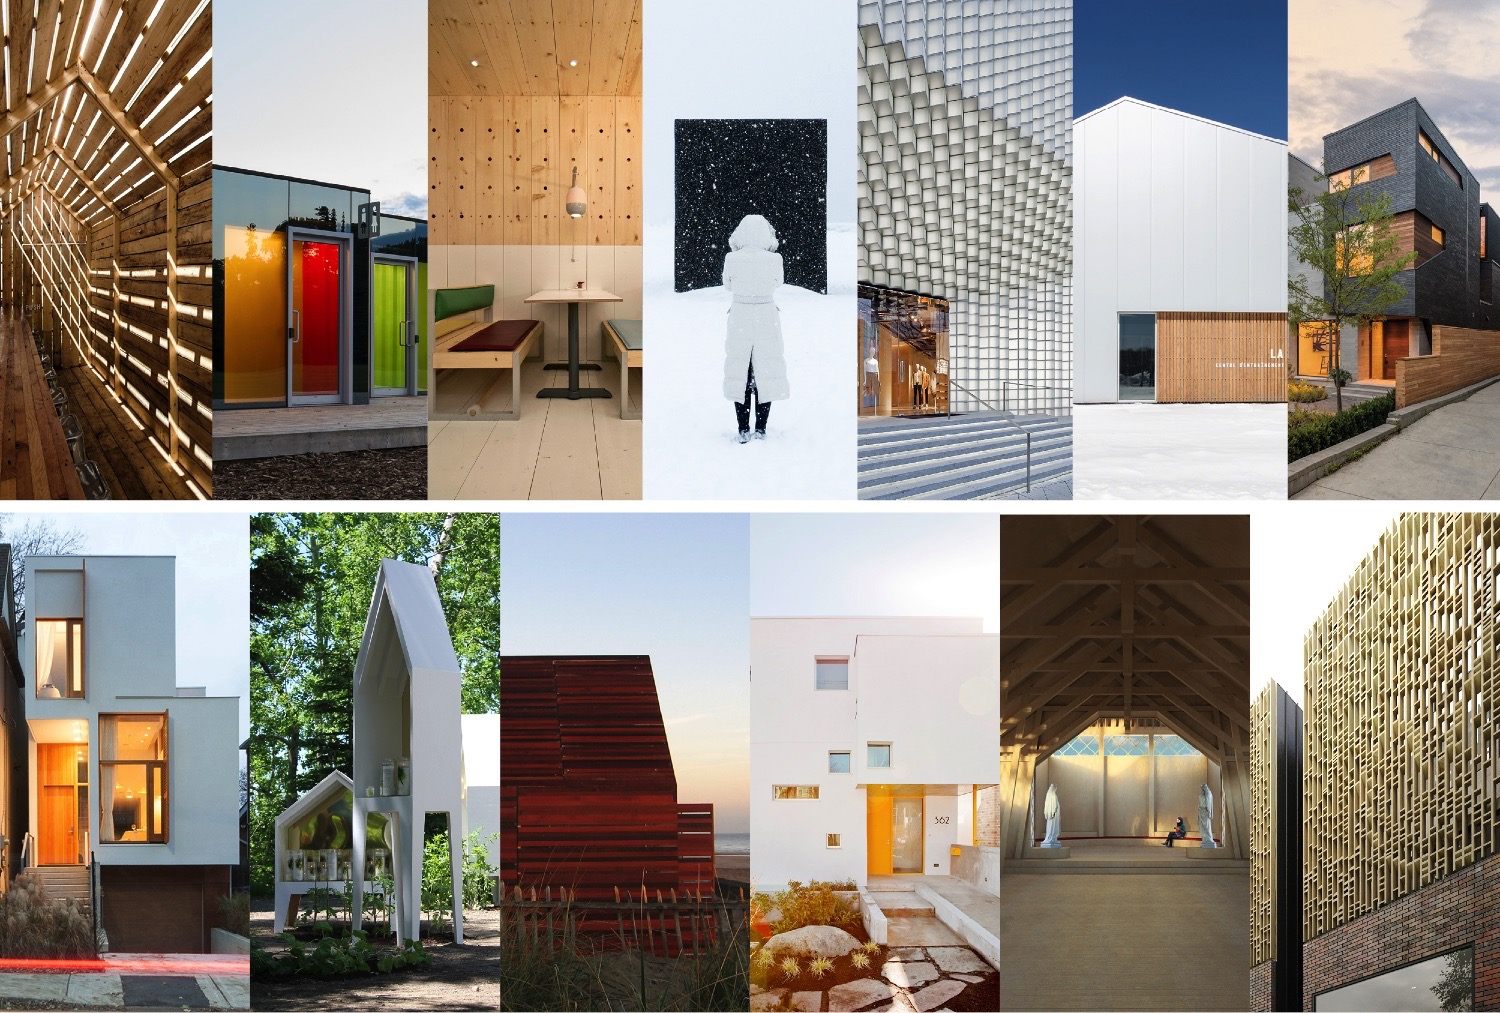 Canadian Architect and Twenty + Change : Open Call for Emerging Practices (Deadline next week!)